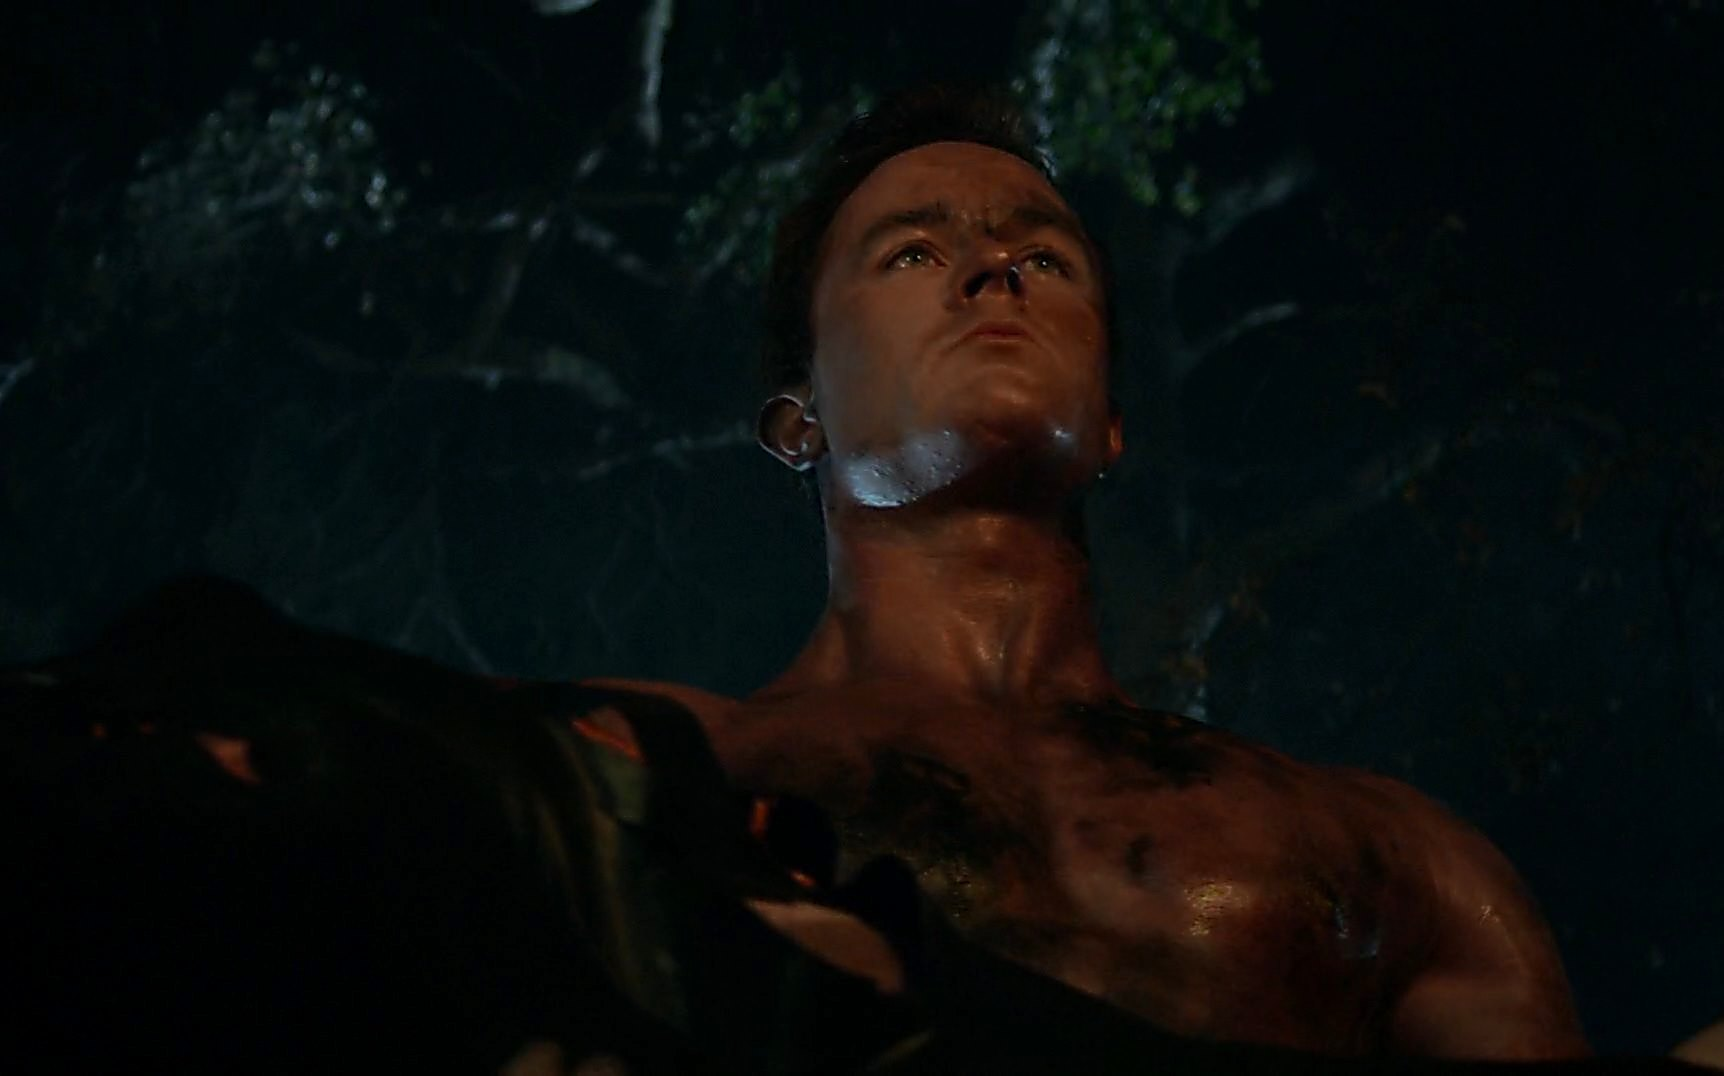 Ryan Kelley sexy shirtless scene July 15, 2015, 12am